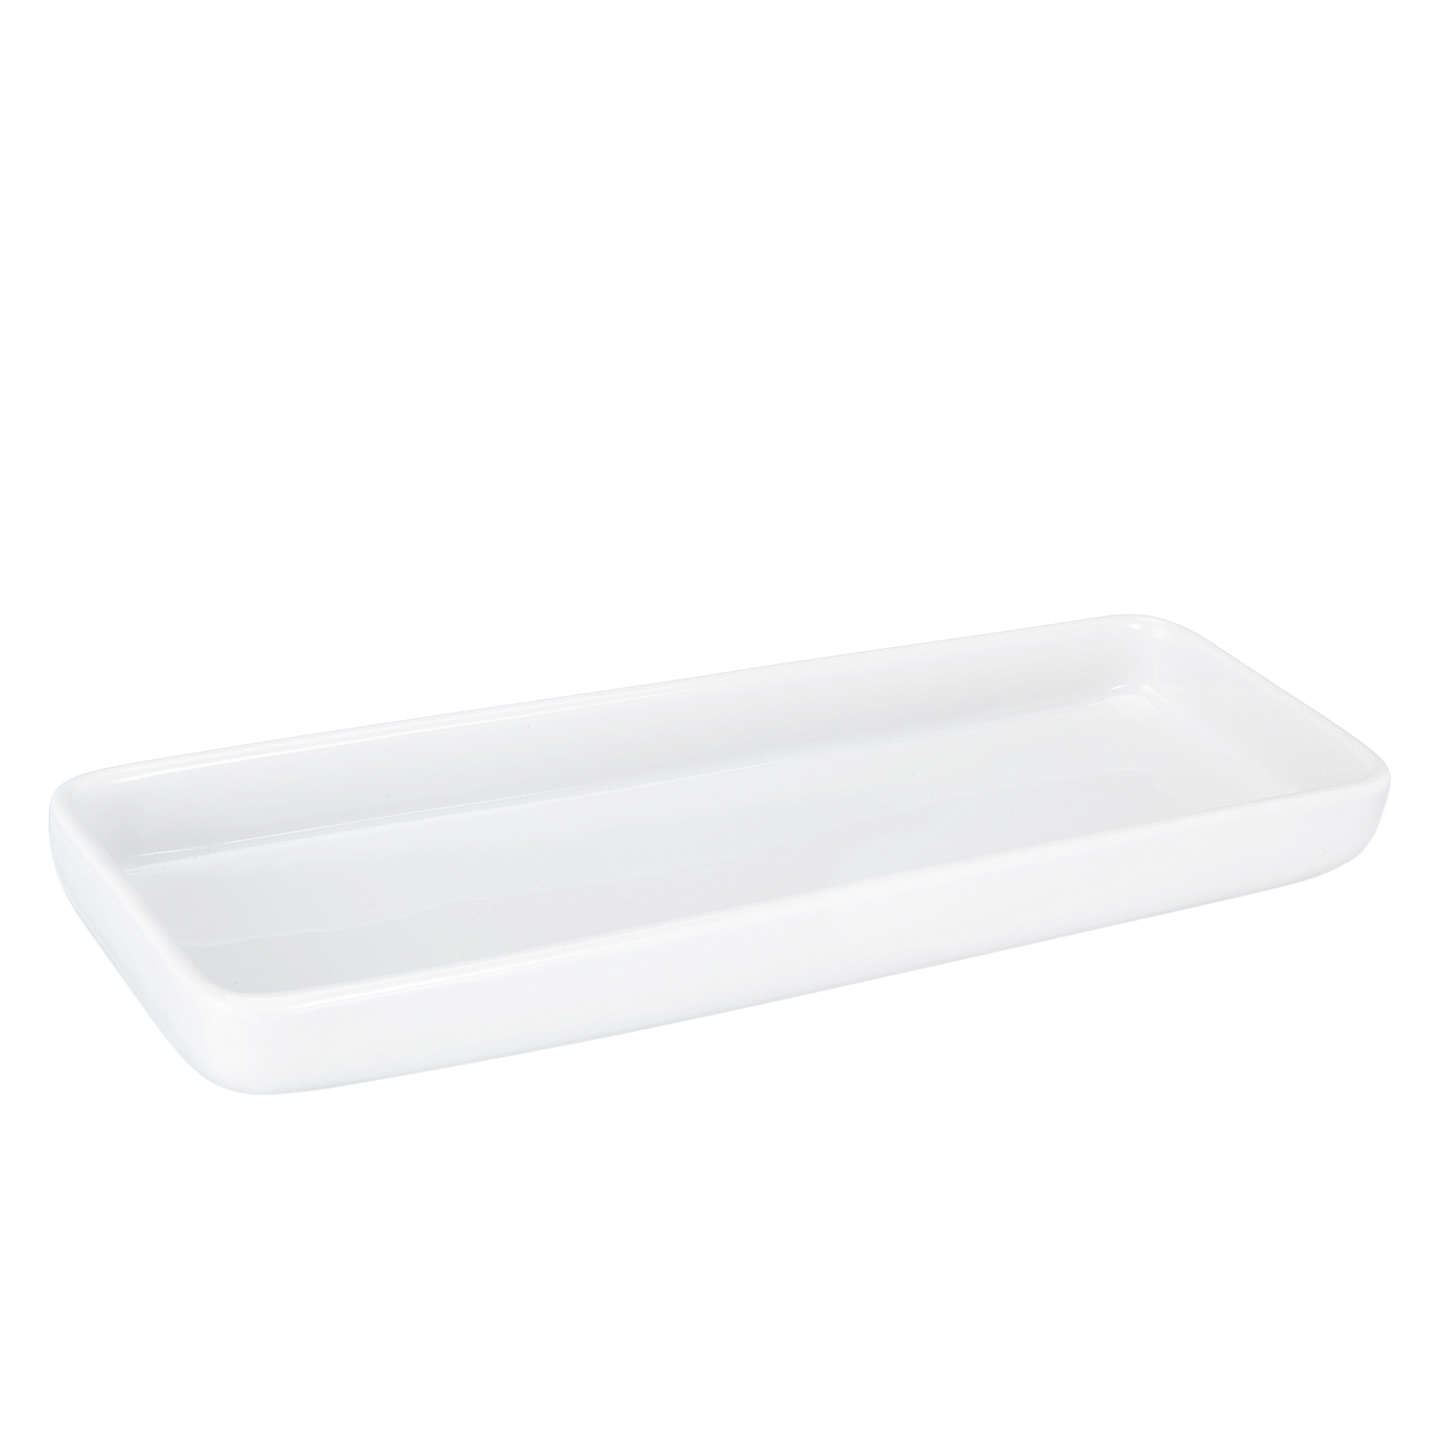 House by John Lewis Mode Bathroom Accessories Tray at John Lewis